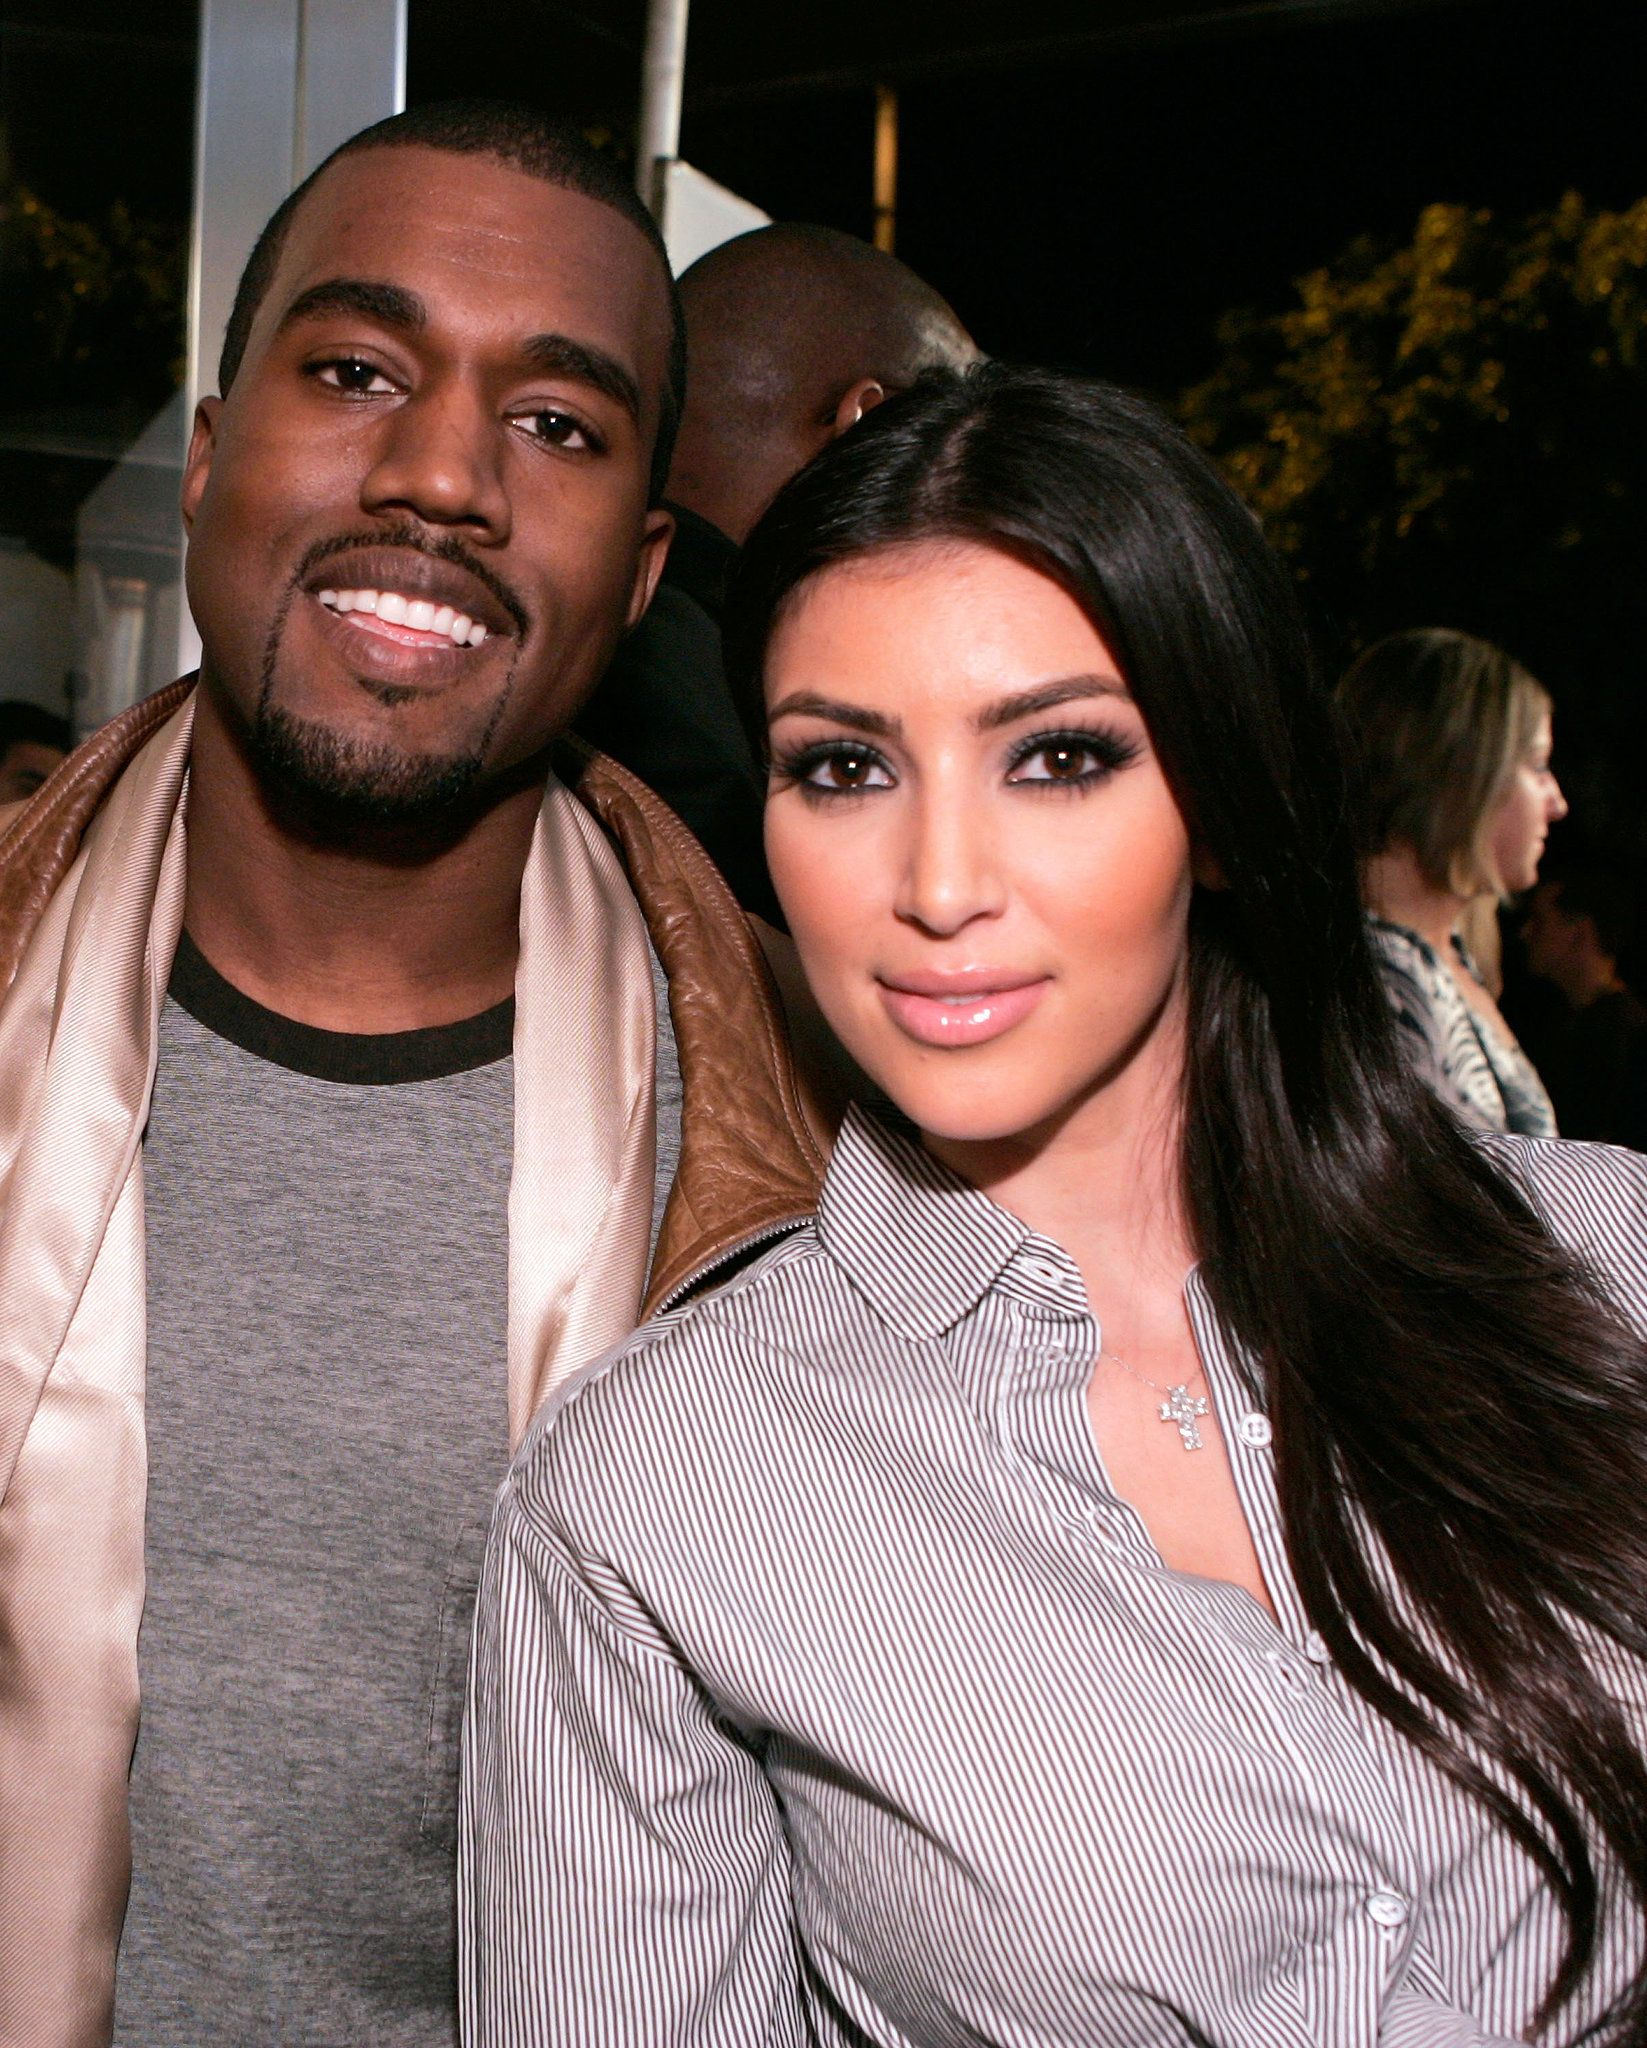 Talk about foreshadowing: Kim Kardashian met up with her then-buddy Kanye West at the opening of Intermix's LA store in September 2007.